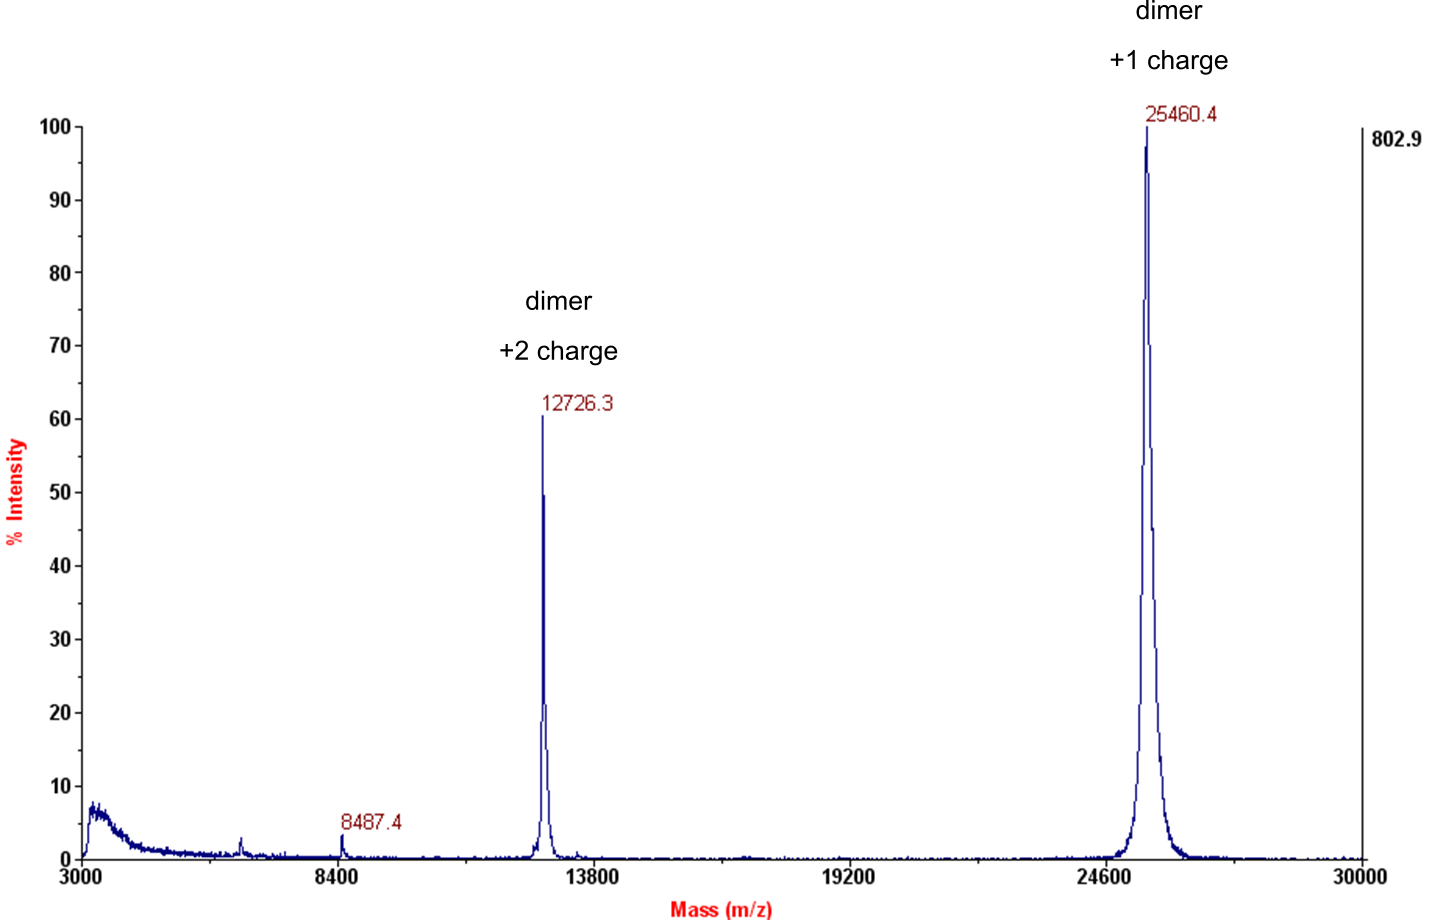 Mass spectrometry analysis for recombinant human TGF-β1 PLUS protein